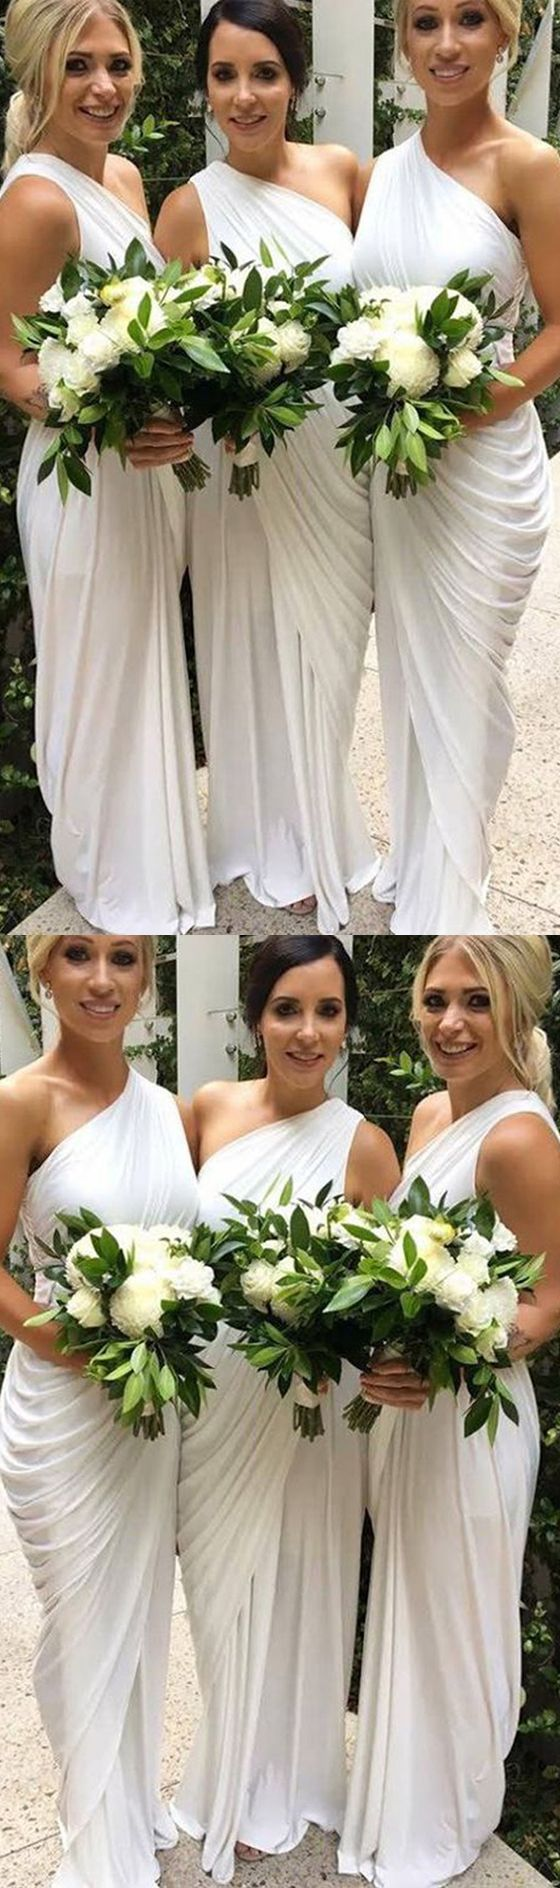 One shoulder bridesmaid dress, simple bridesmaid dresses, cheap bridesmaid dresses, jersey bridesmaid dresses, wedding party dresses, PD15319 #bridesmaid #bridesmaids #bridesmaiddress #weddingparty #wedding #weddings #weddingpartydress #weddingguest